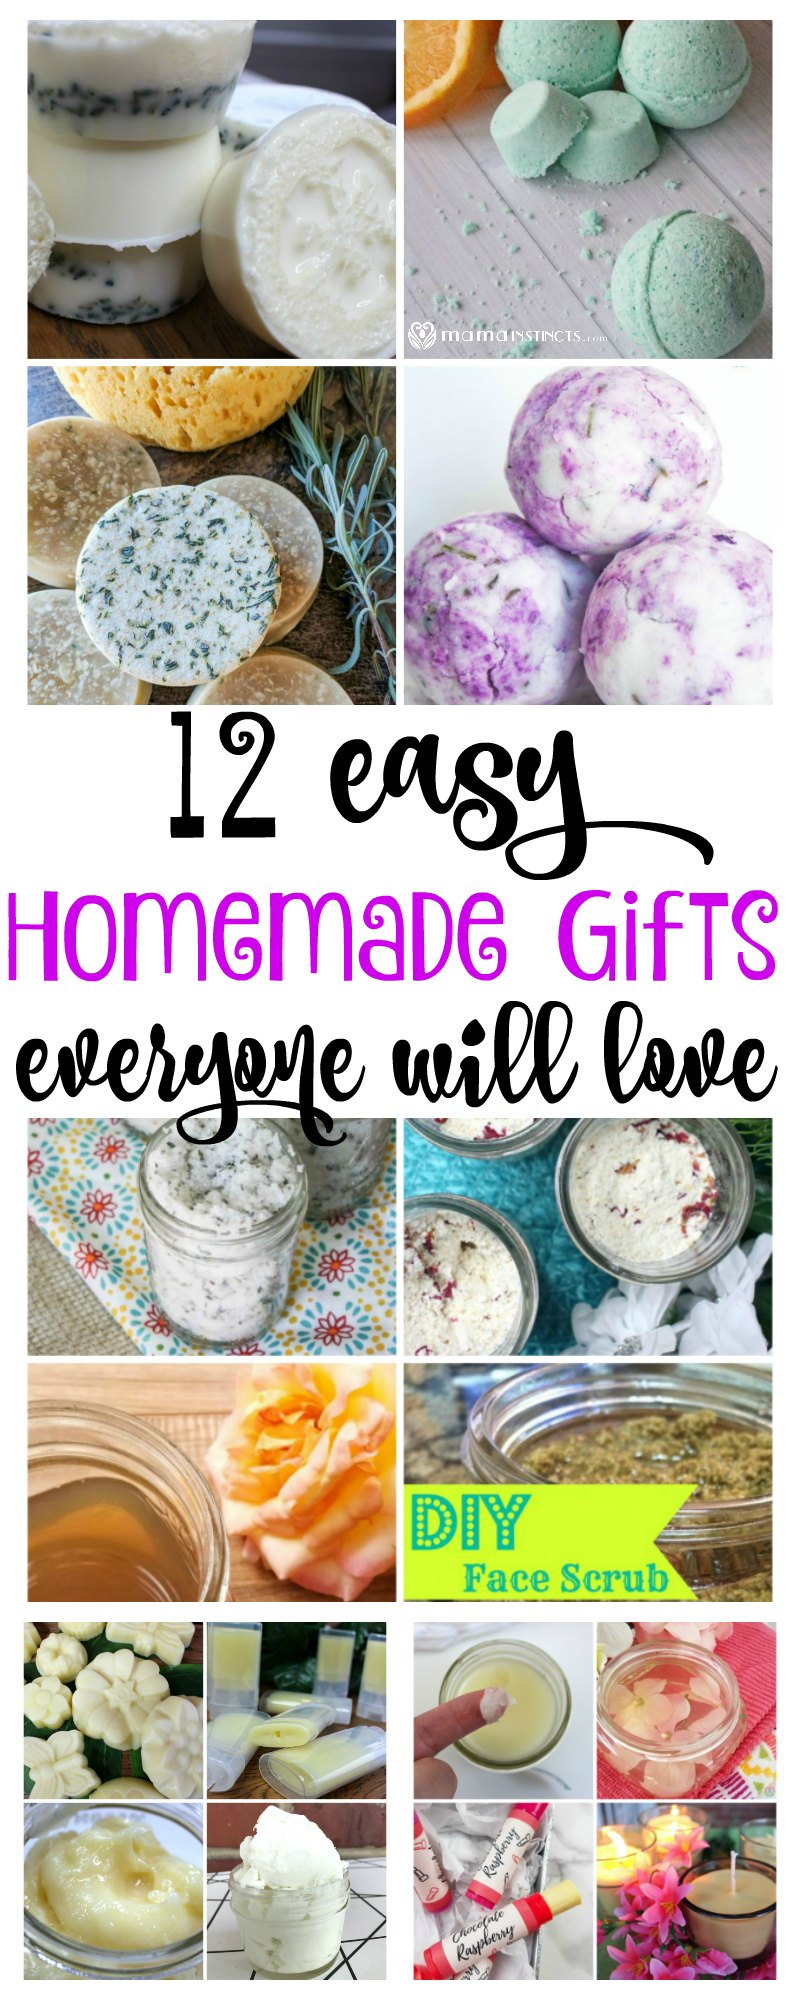 12 easy homemade gifts everyone will love mama instincts